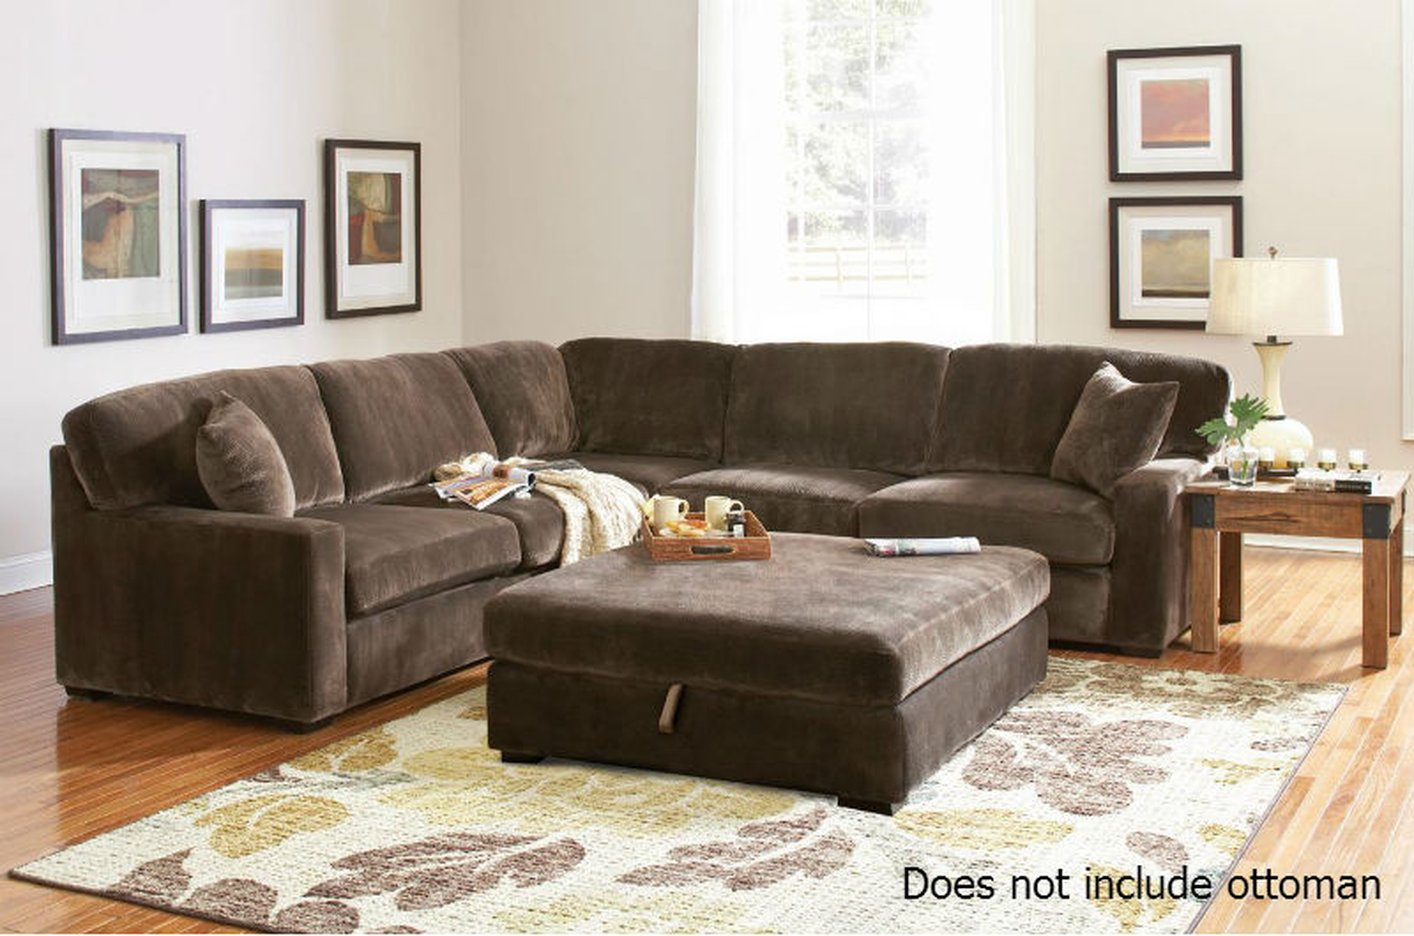 Coaster 500703 brown fabric sectional sofa steal a sofa for Brown fabric couch